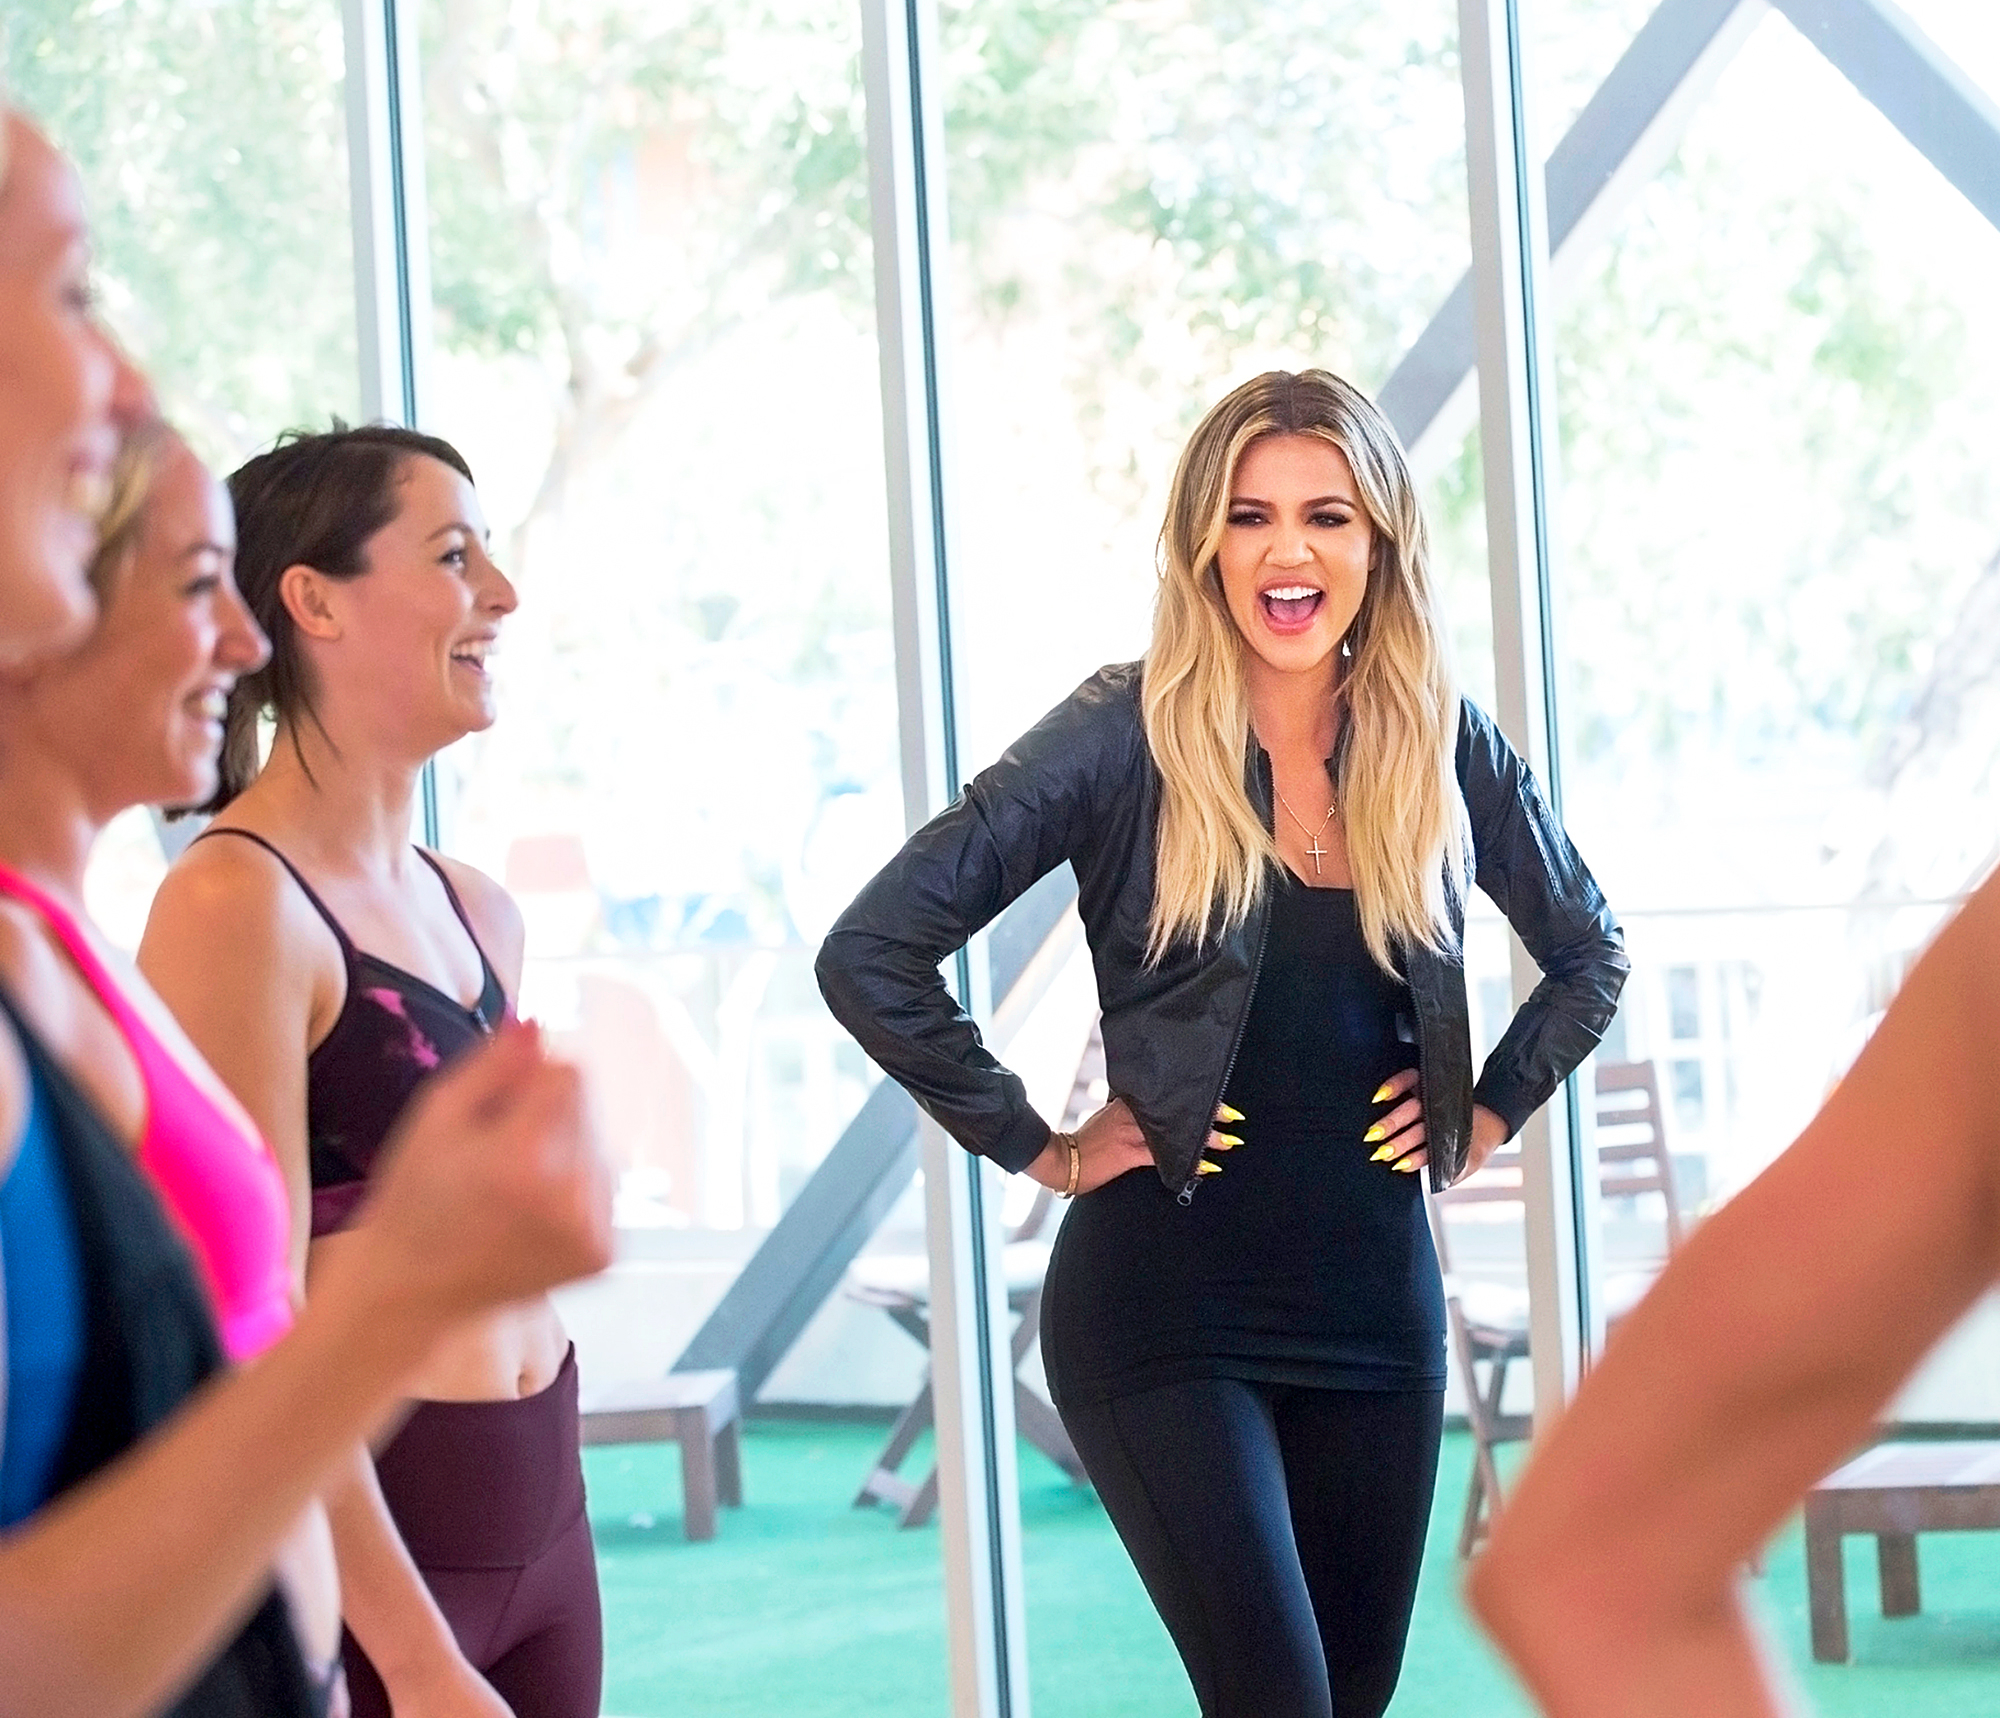 Khloe Kardashian Reveals How Much She Exercises While Pregnant